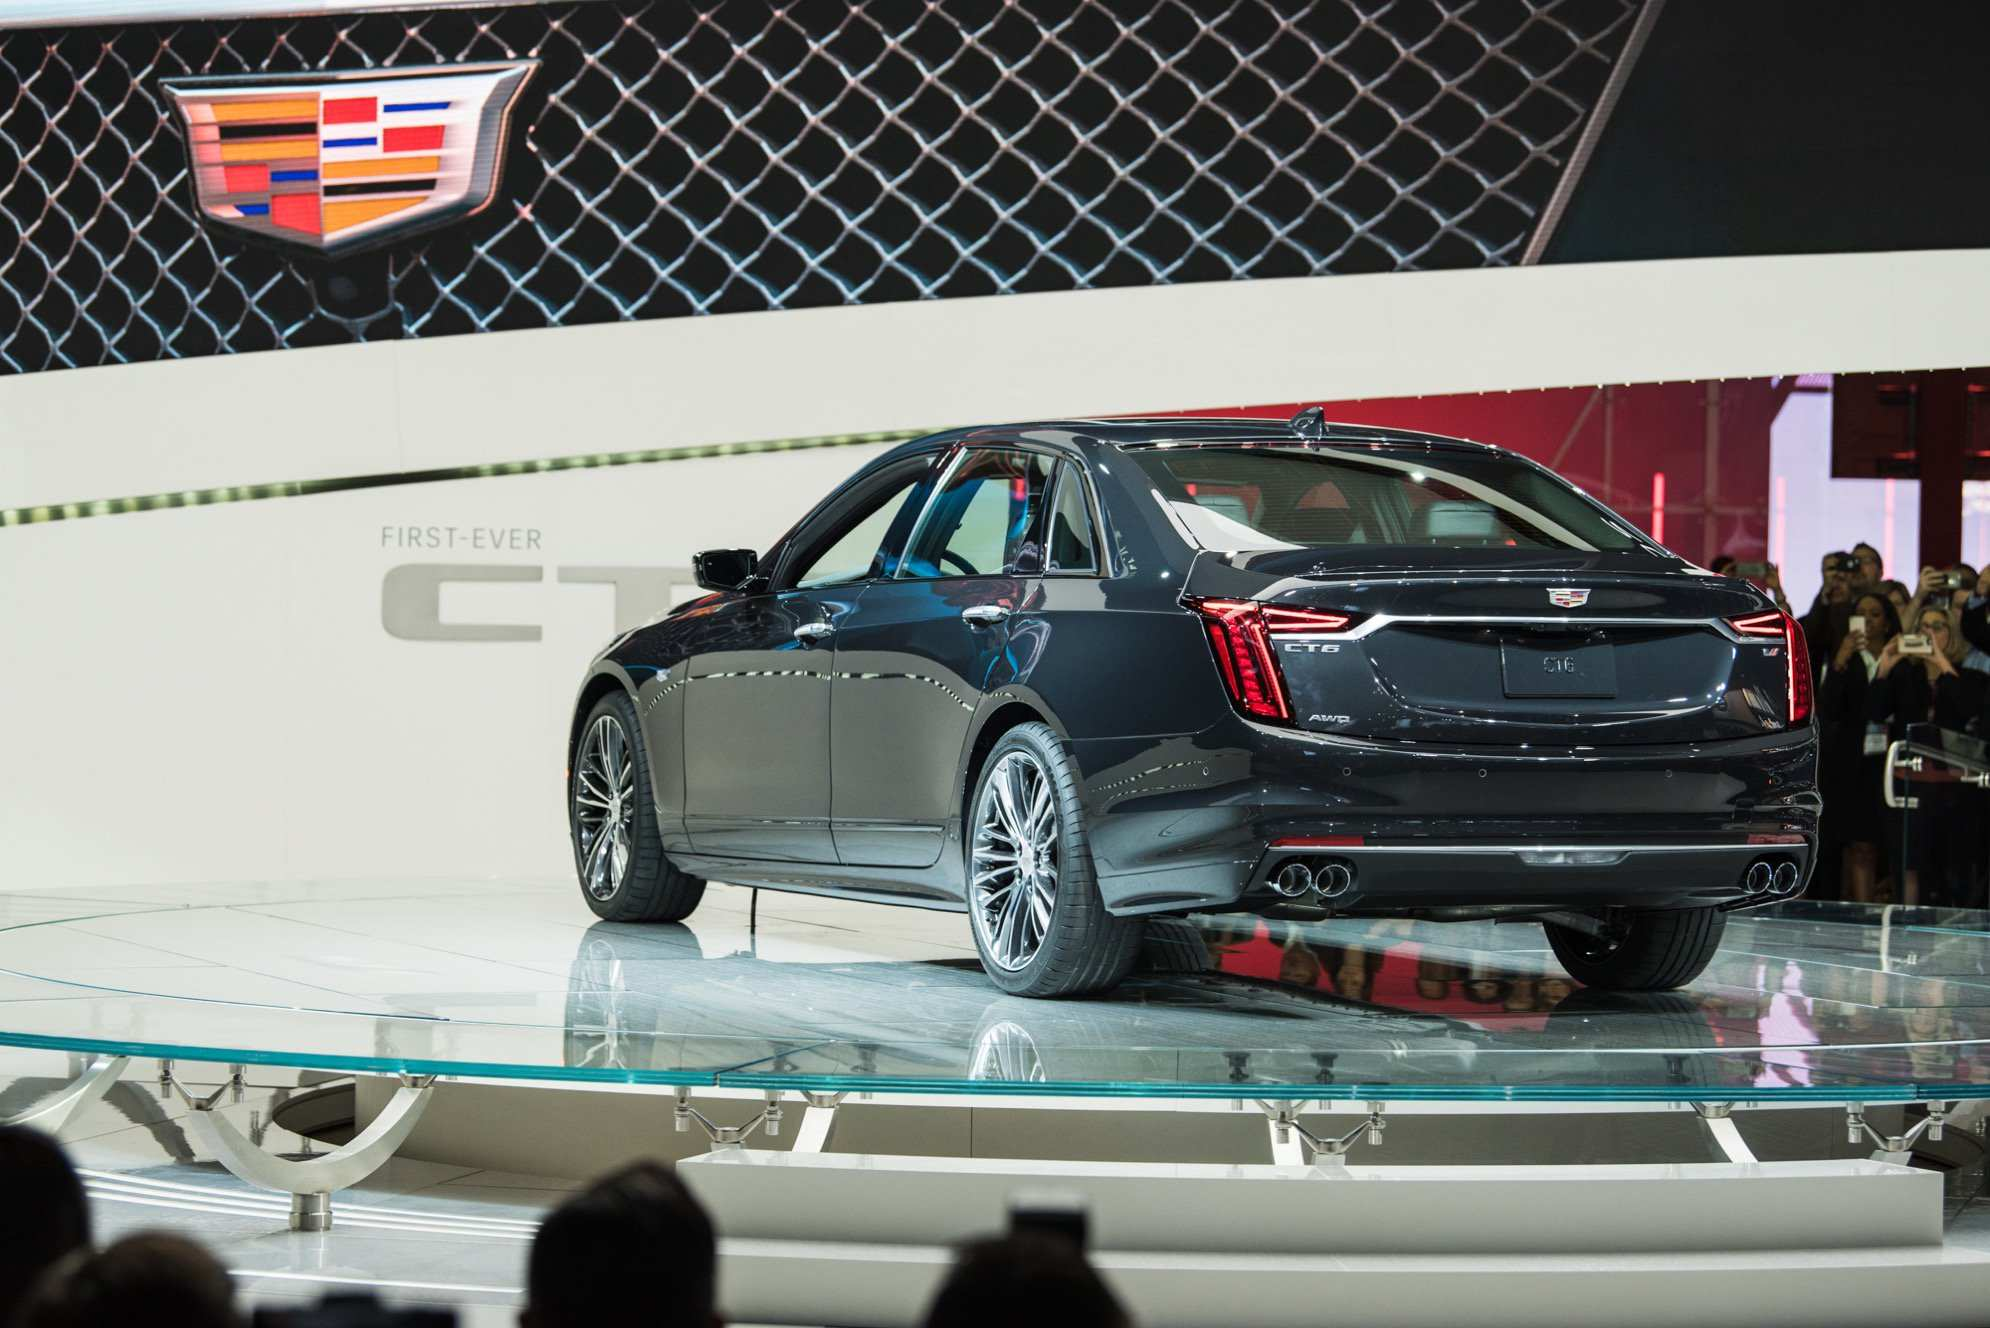 69 Great 2019 Cadillac Twin Turbo V8 Price and Review for 2019 Cadillac Twin Turbo V8